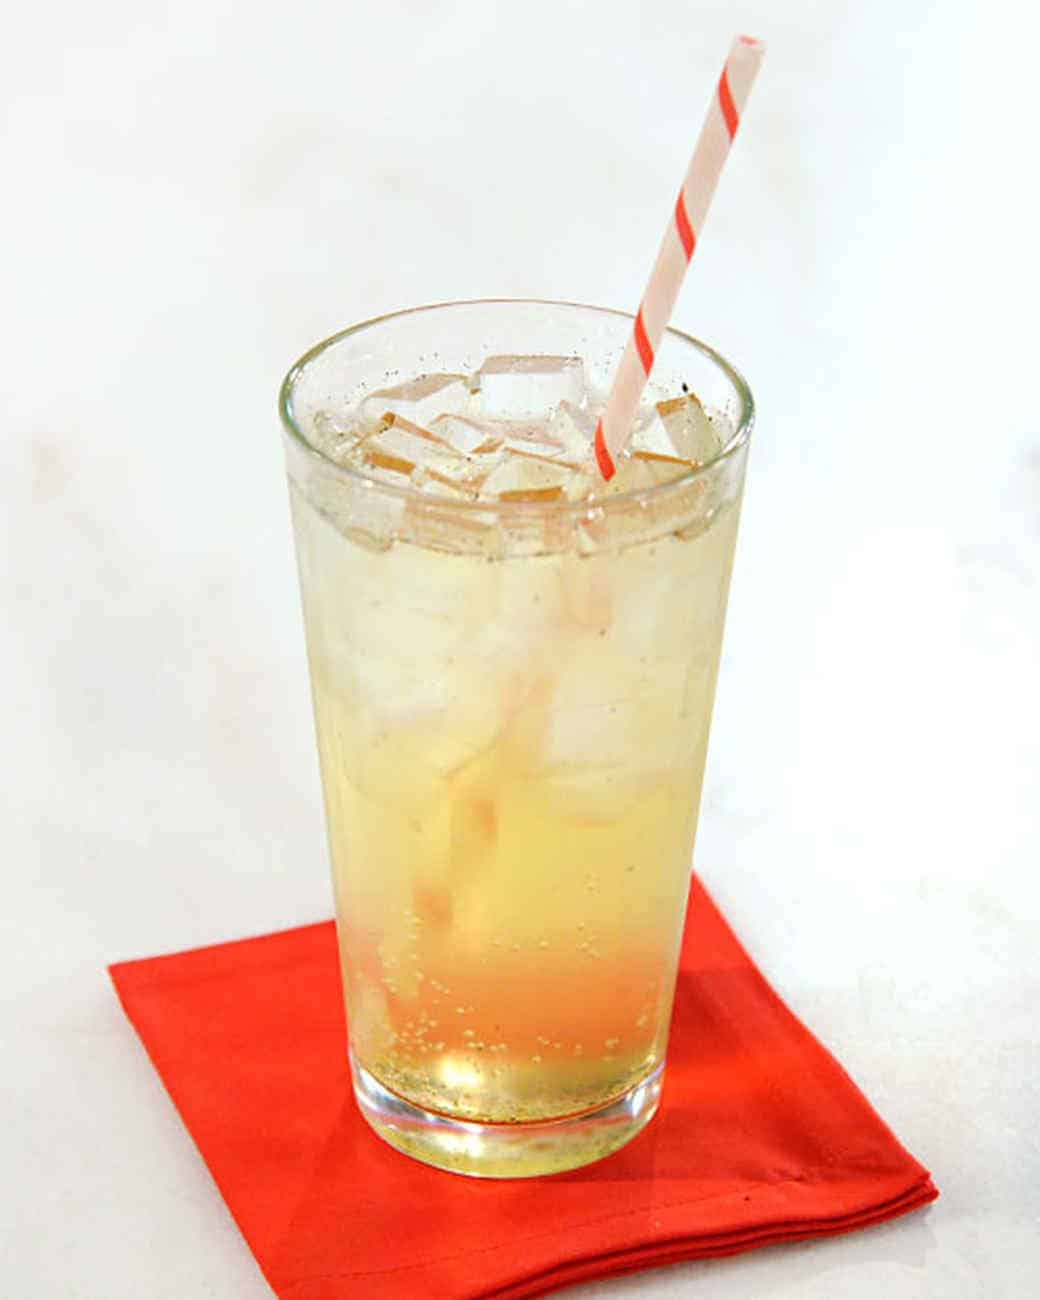 Homemade cream soda simple syrup